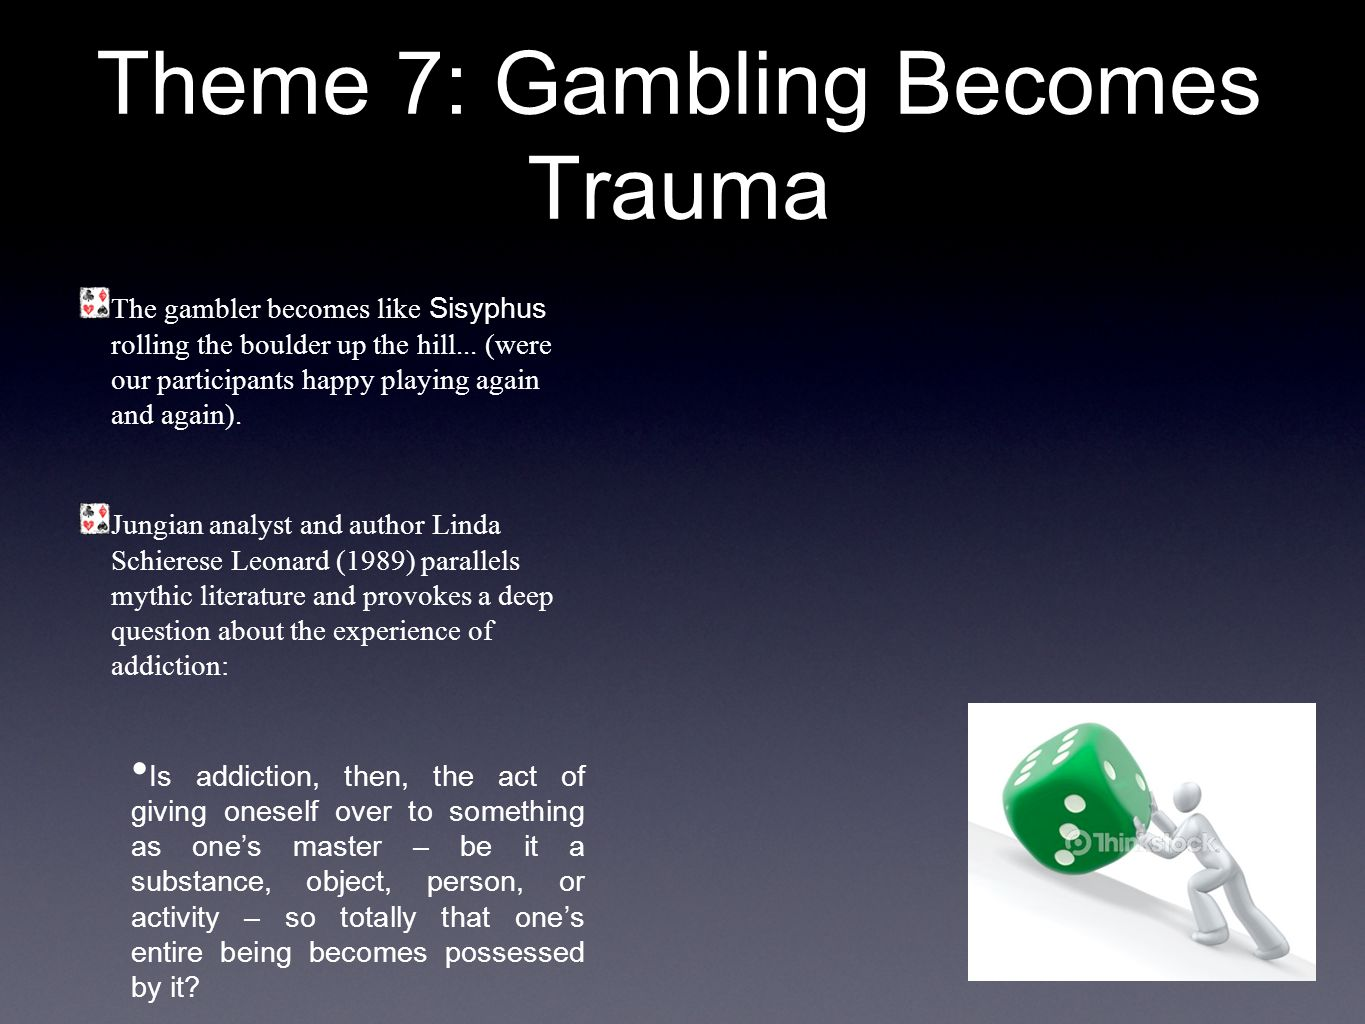 Theme 7: Gambling Becomes Trauma The gambler becomes like Sisyphus rolling the boulder up the hill...